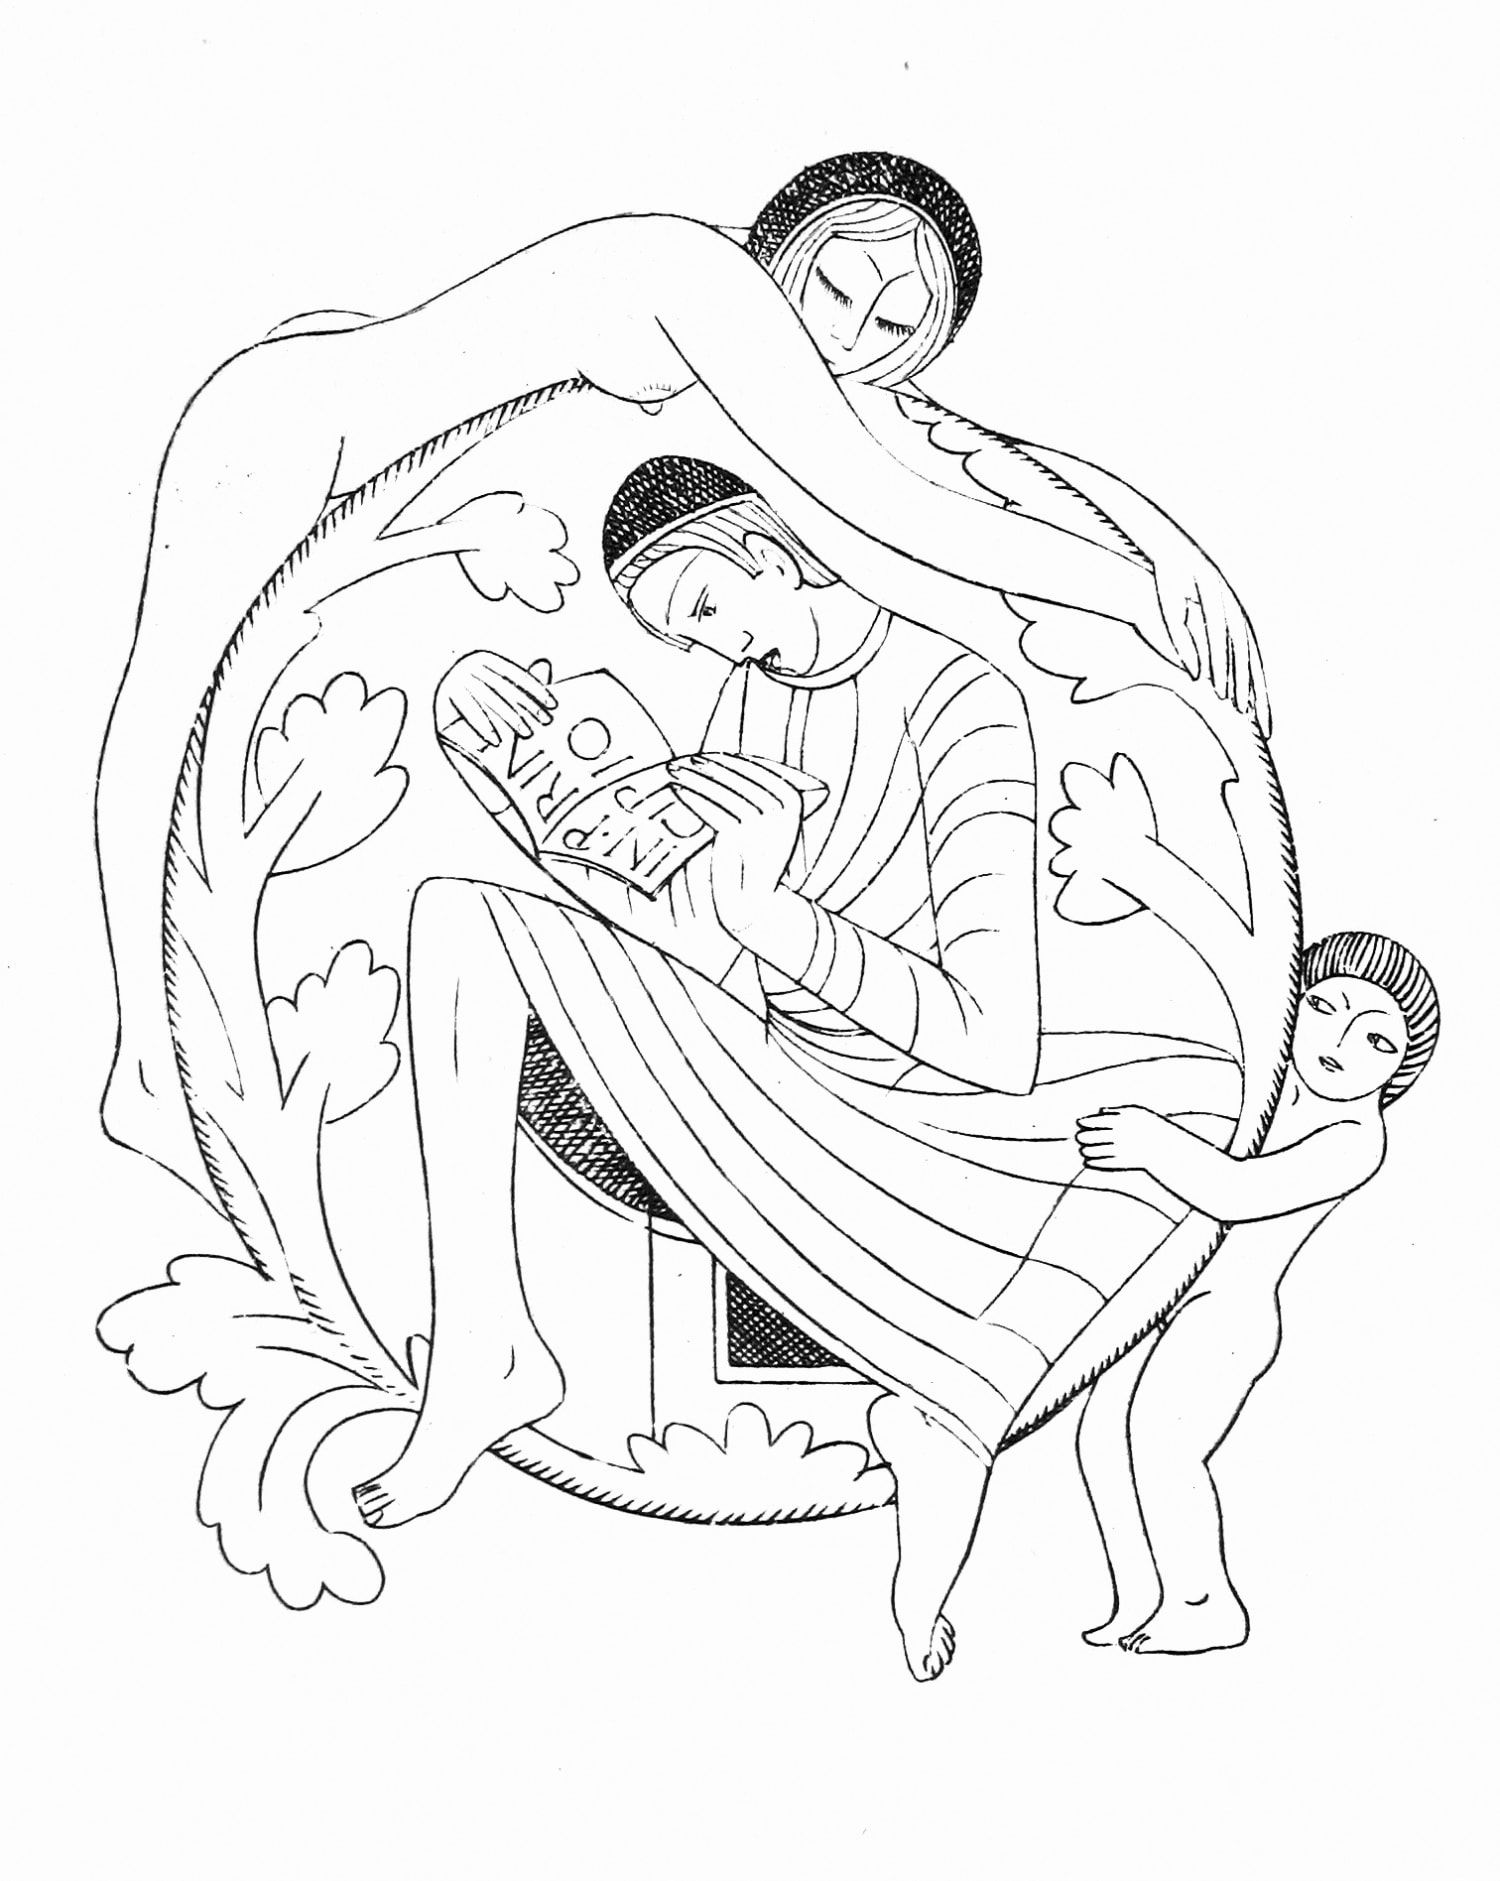 ERIC GILL | Graphic